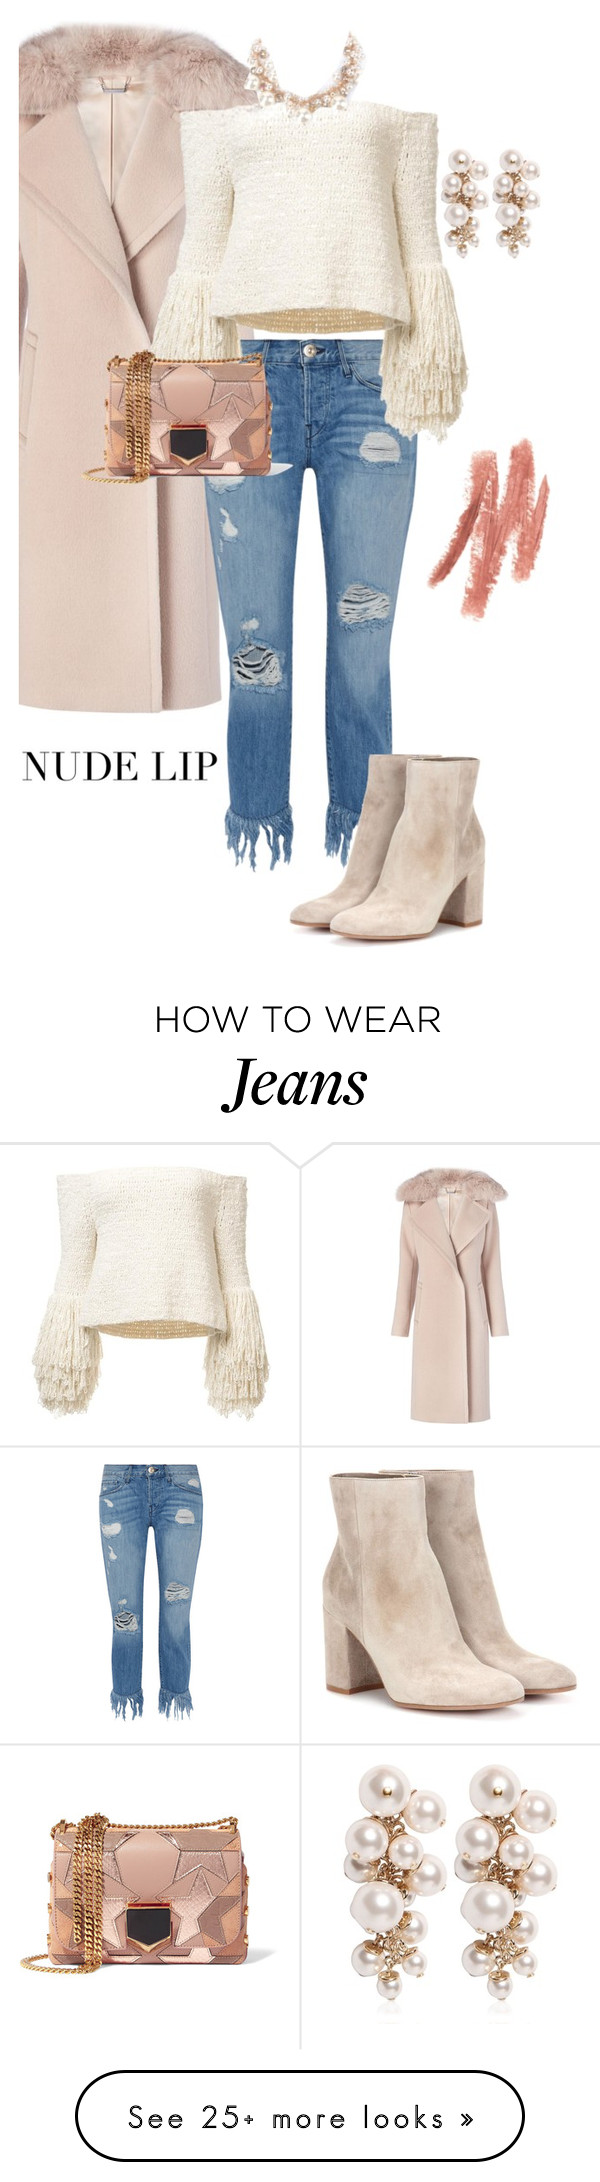 """""""Ripped Jeans"""" by sara12alexandra on Polyvore featuring Diane Von Furstenberg, 3x1, Gianvito Rossi, Jimmy Choo and Lanvin"""